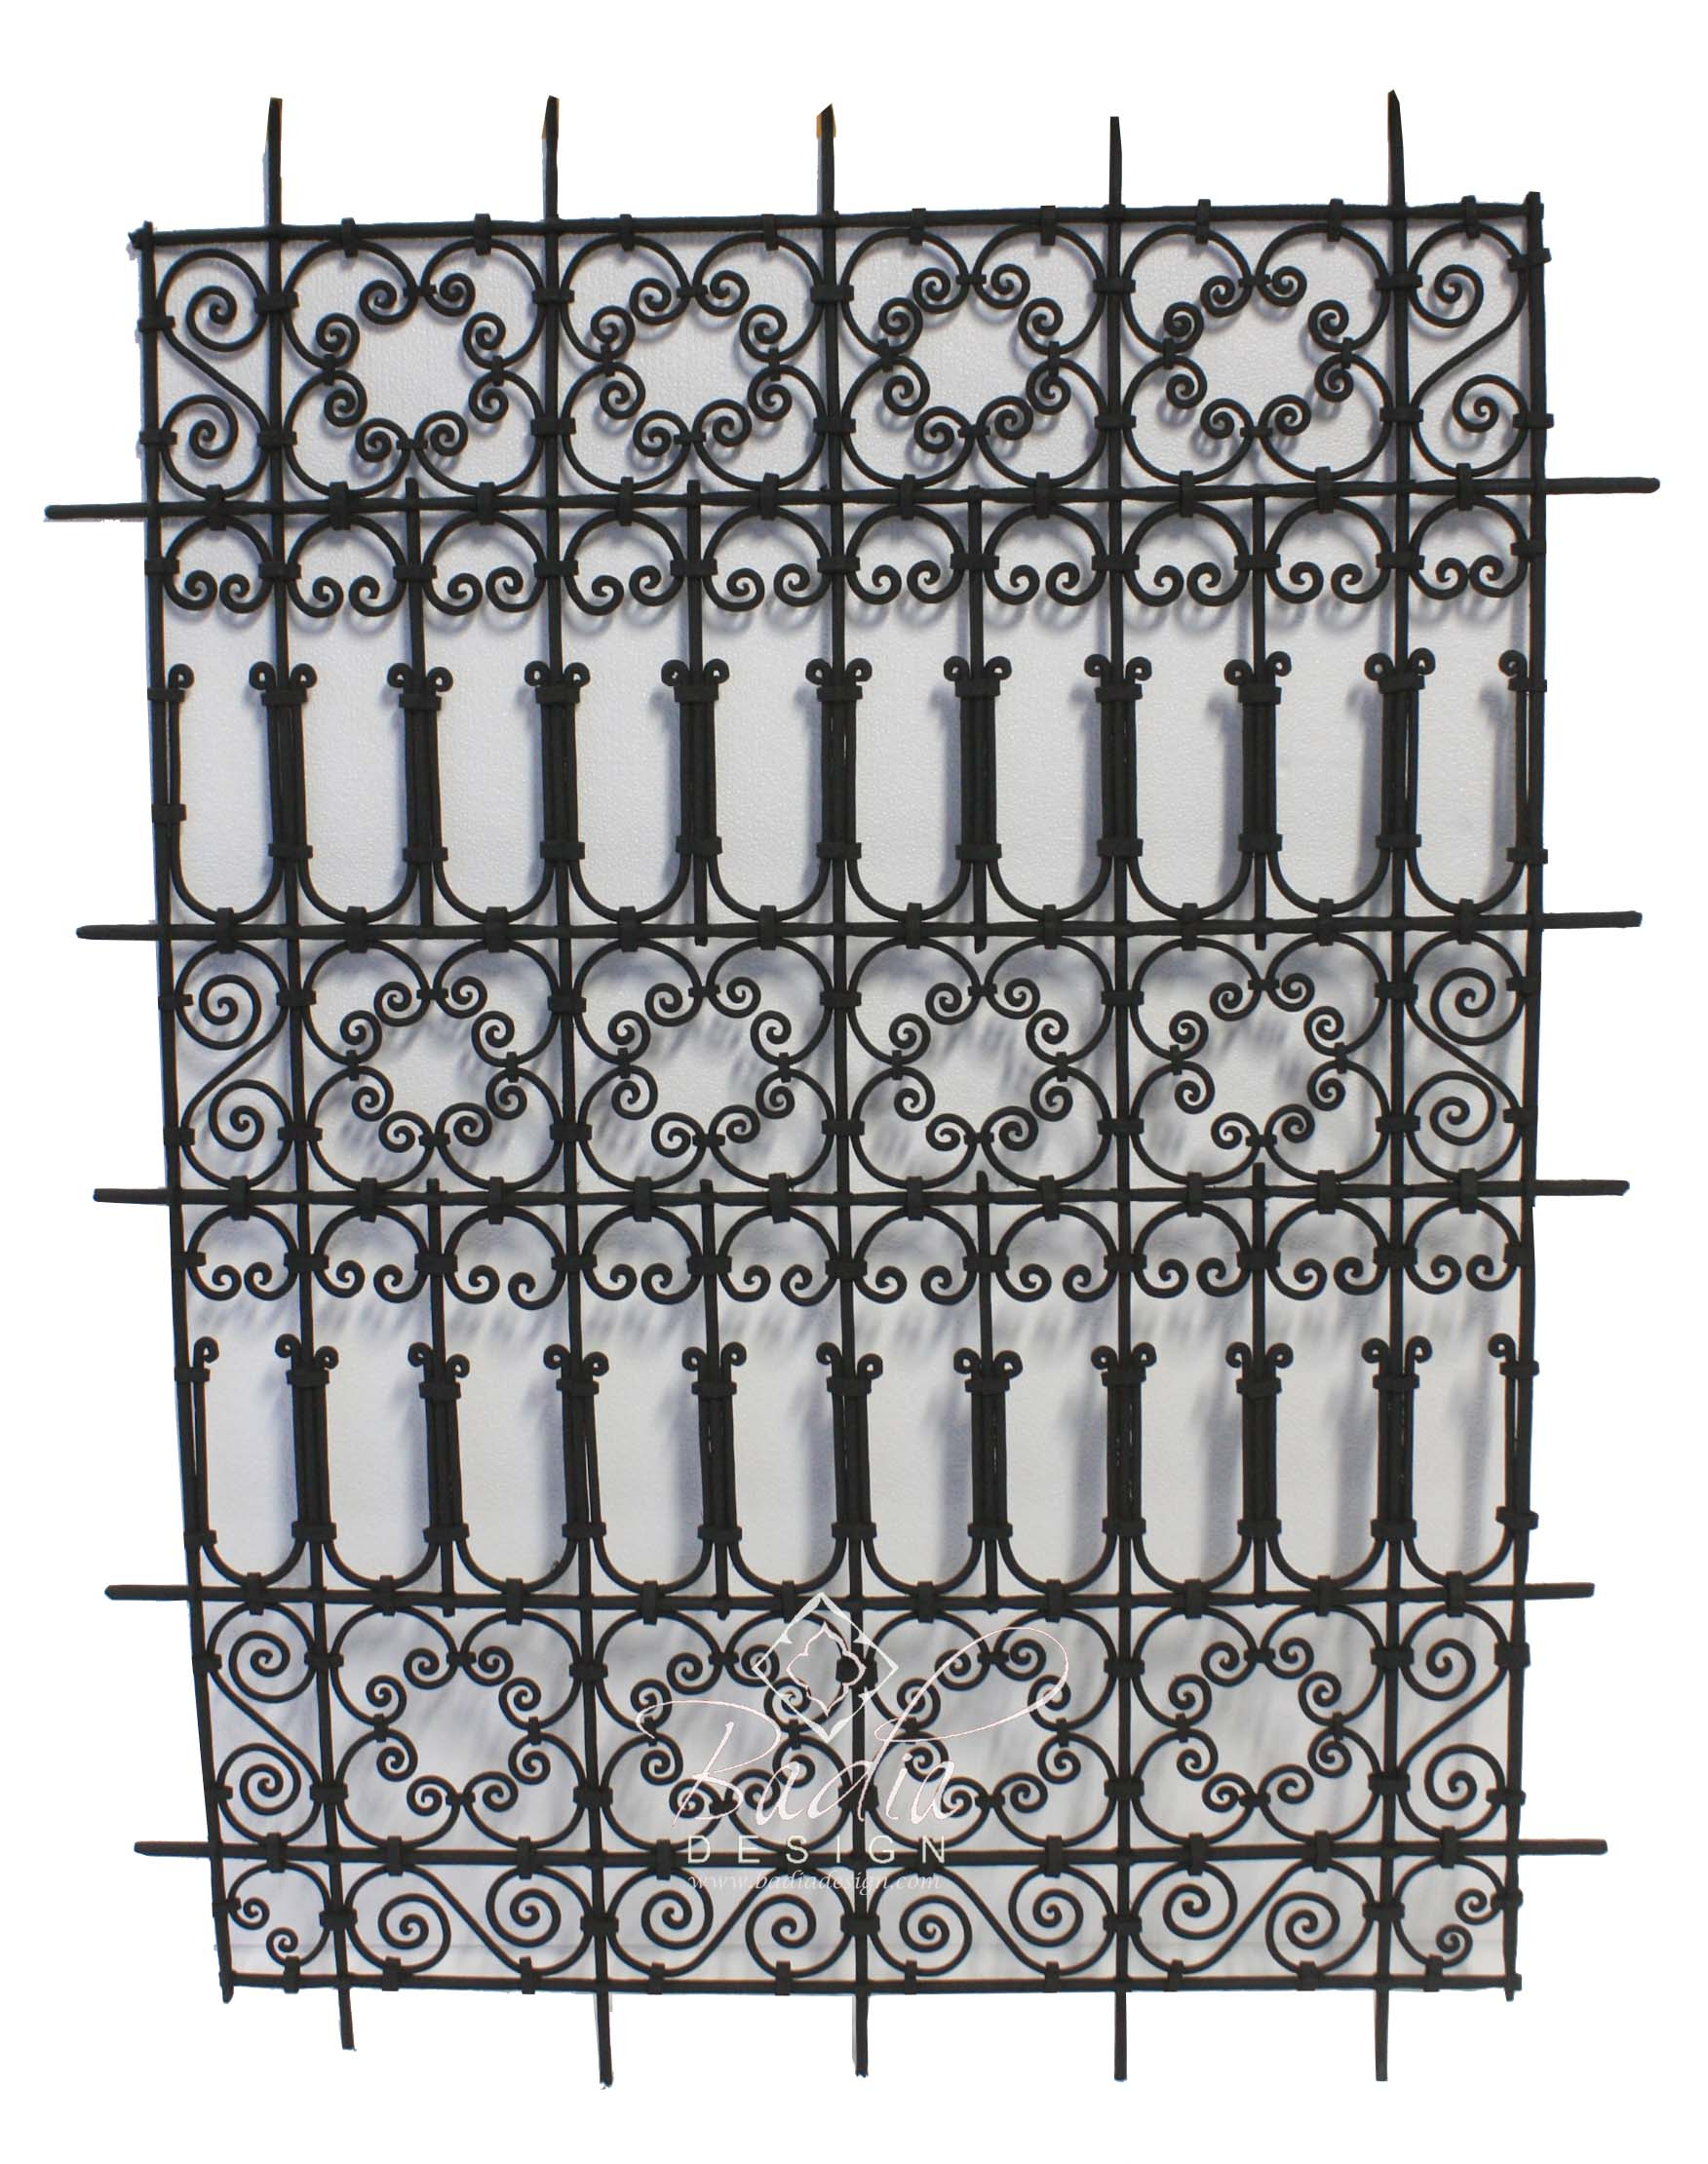 moroccan-rectangular-shaped-wrought-iron-panel-ip020.jpg